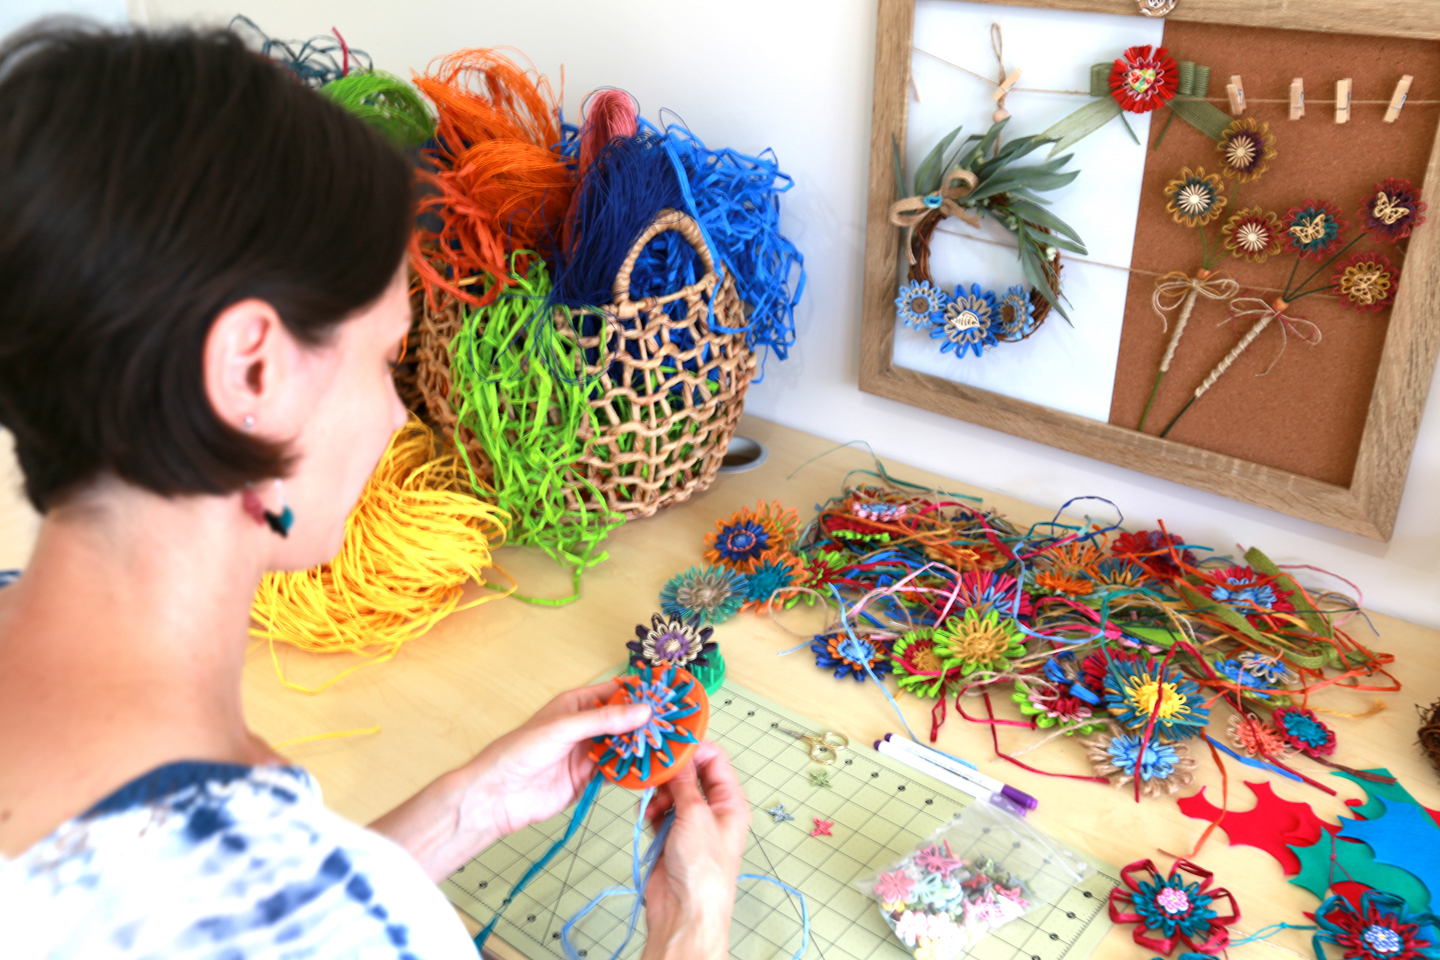 Looking over Marketa's shoulder as she weaves a raffia flower to make a floral garland decorations in her home workspace in North Queensland